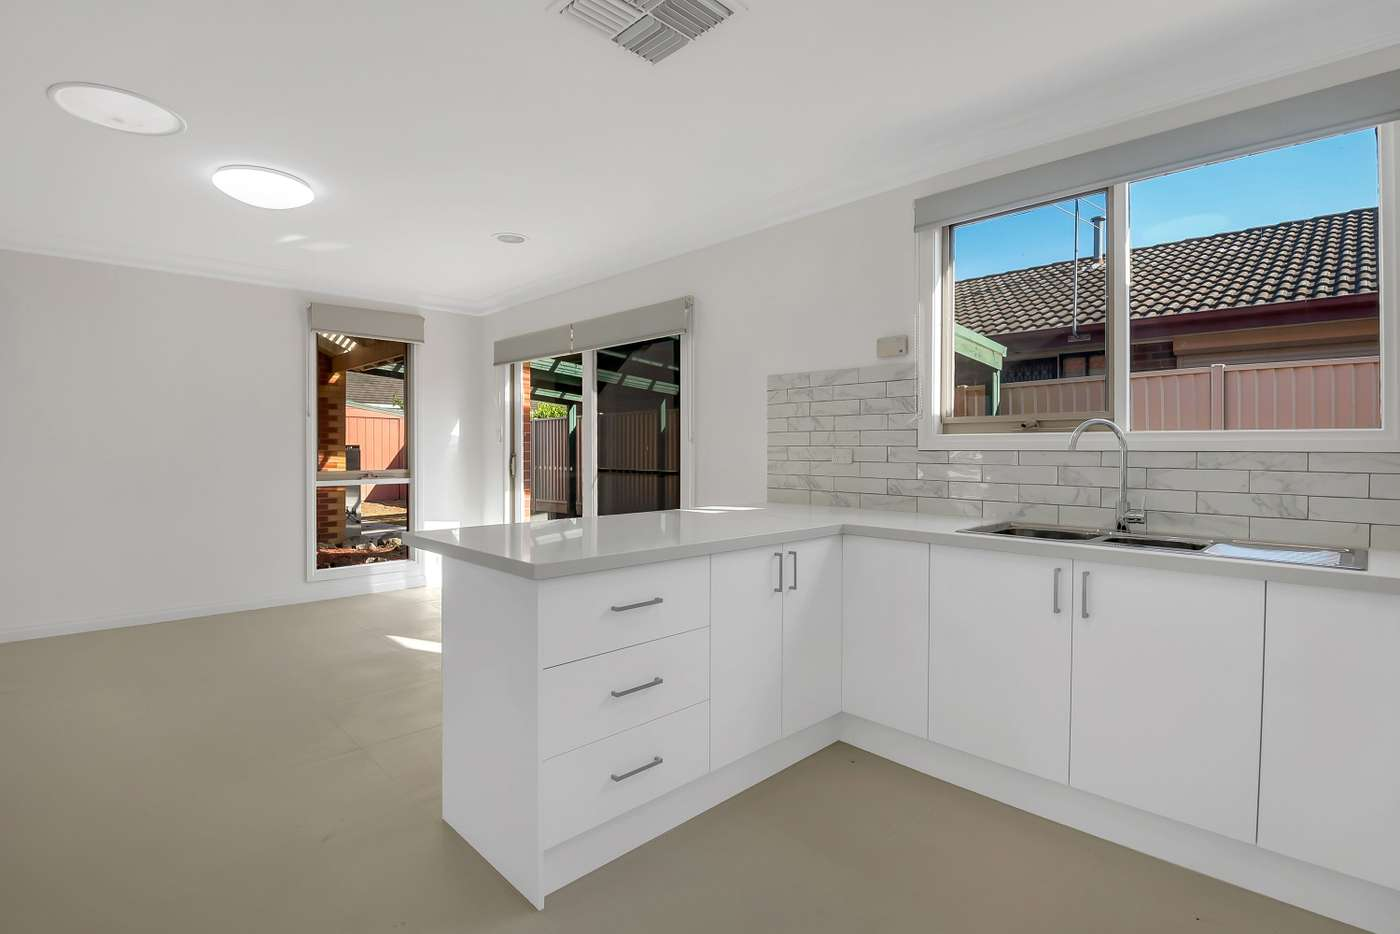 Seventh view of Homely house listing, 46 Stainsby Crescent, Roxburgh Park VIC 3064